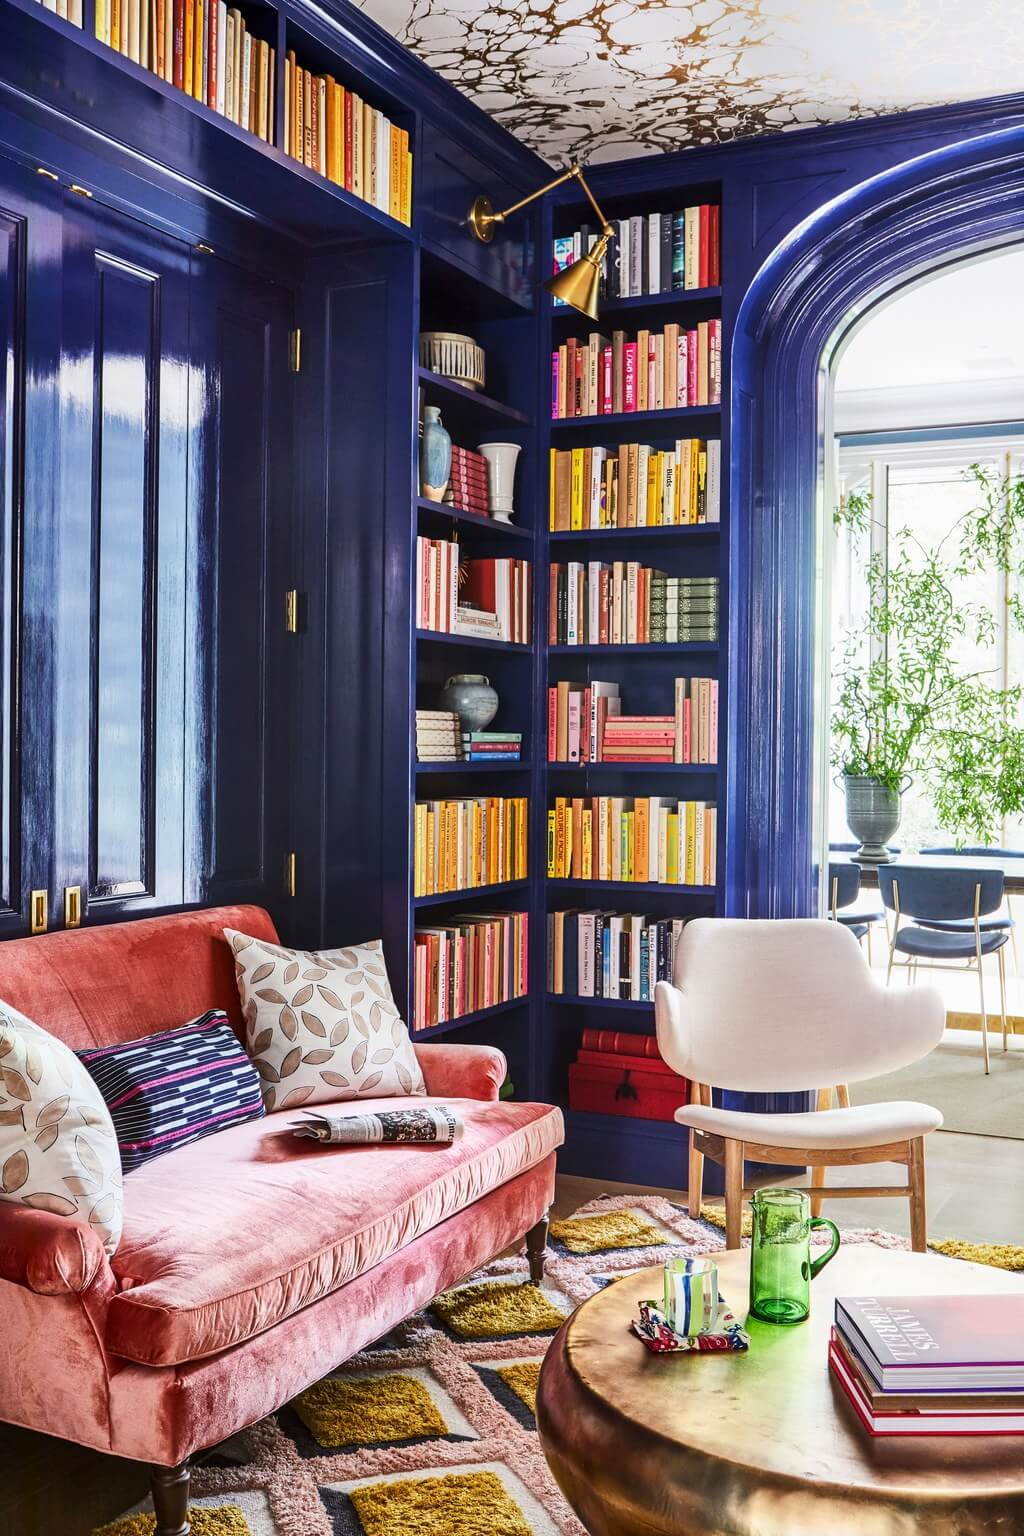 The Colorful Brooklyn Family Home of Sylvana Durrett